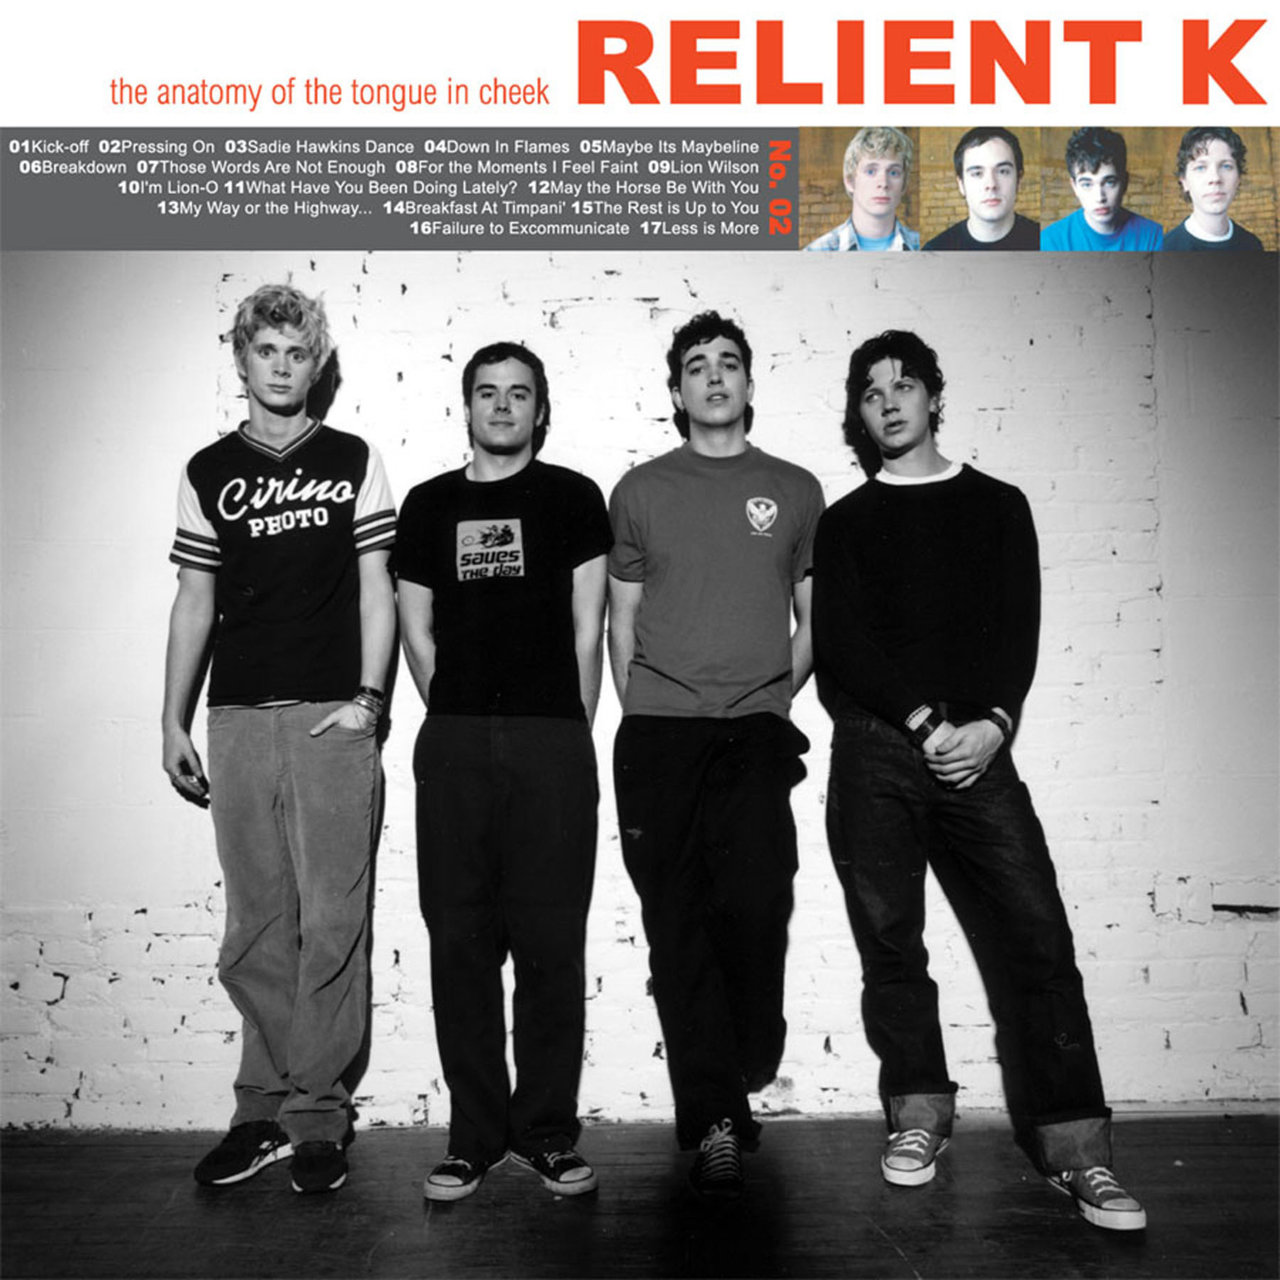 The Anatomy of the Tongue in Cheek / Relient K TIDAL